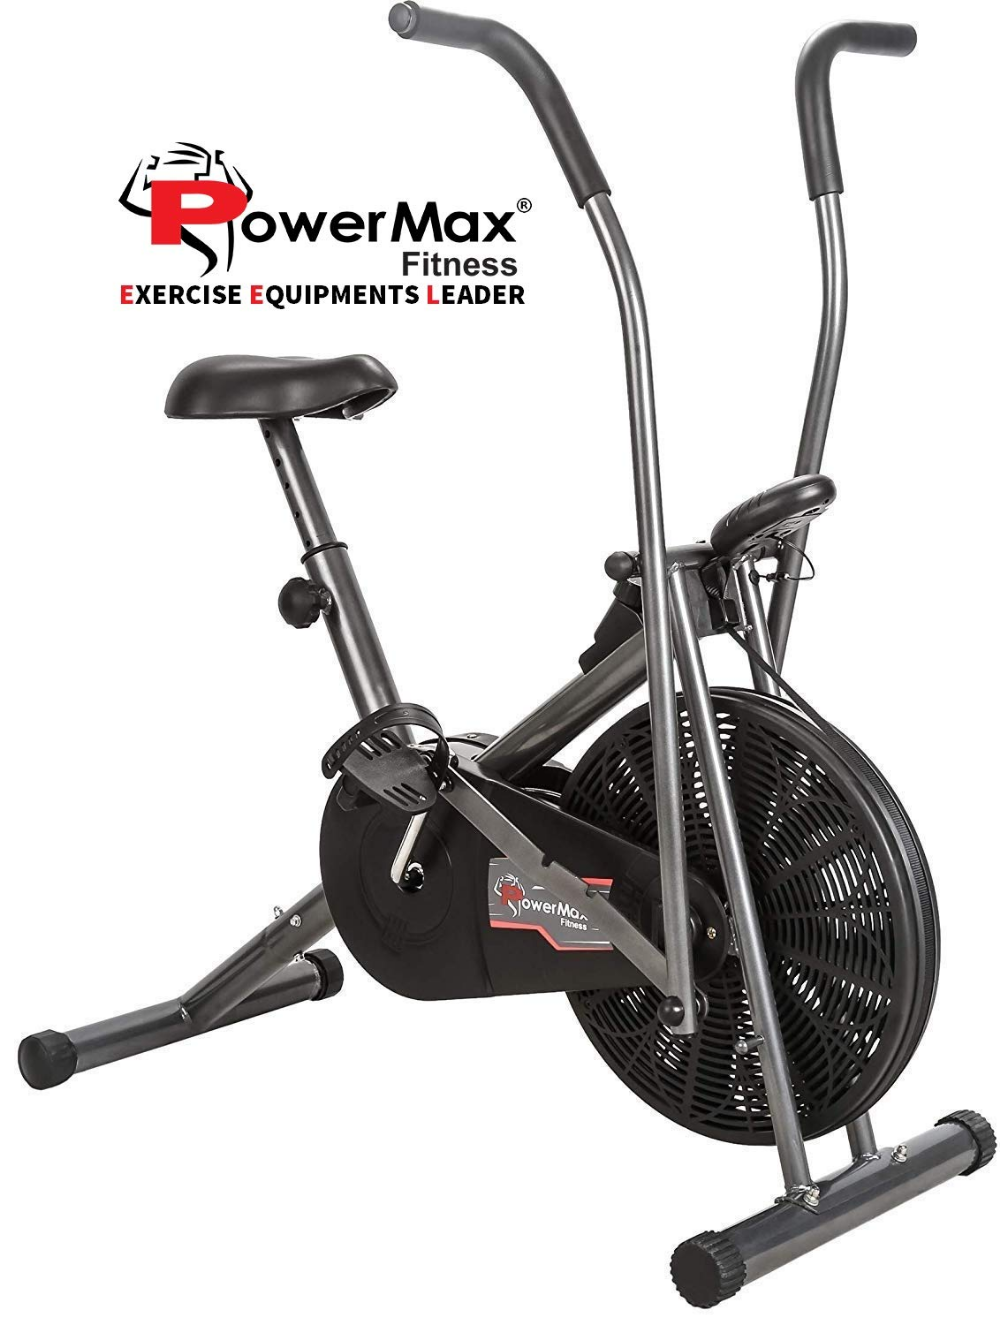 Best 10 Exercise Cycle In India August 2019 With Reviews And